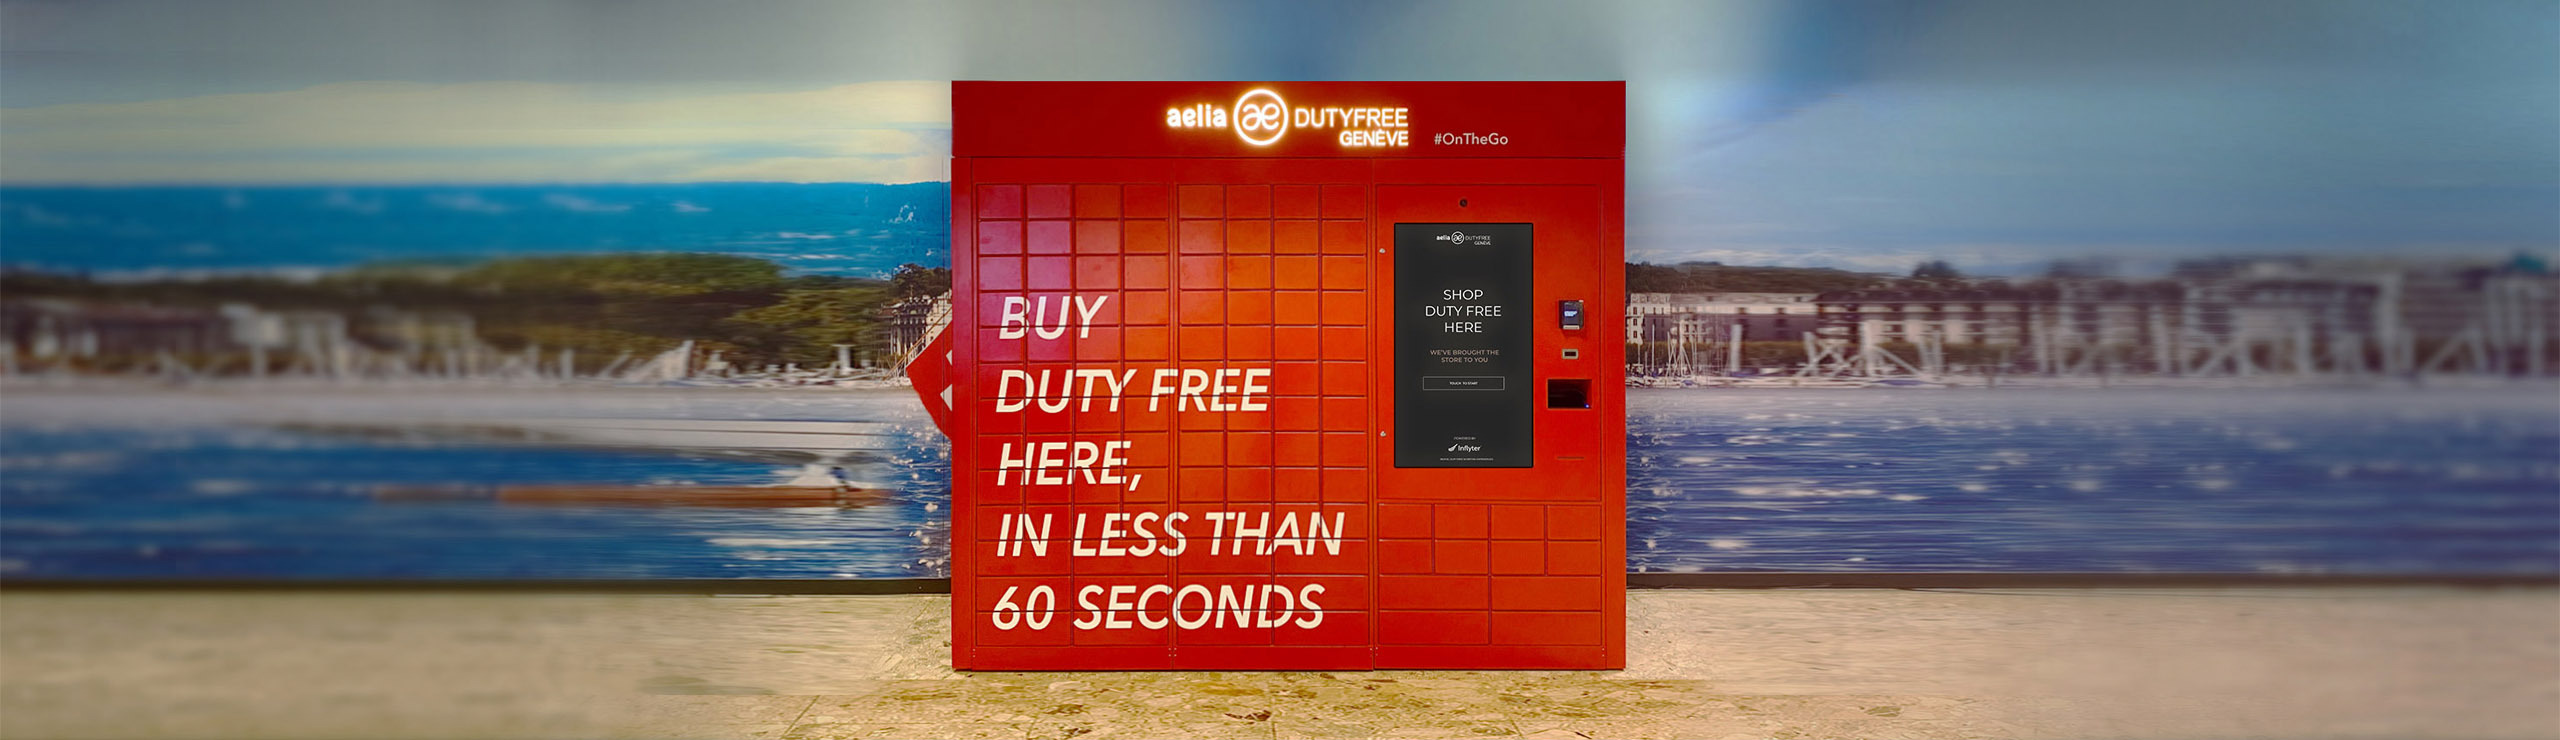 Inflyter launches world's first digital duty free vending machine with Lagardère Travel  Retail Switzerland.